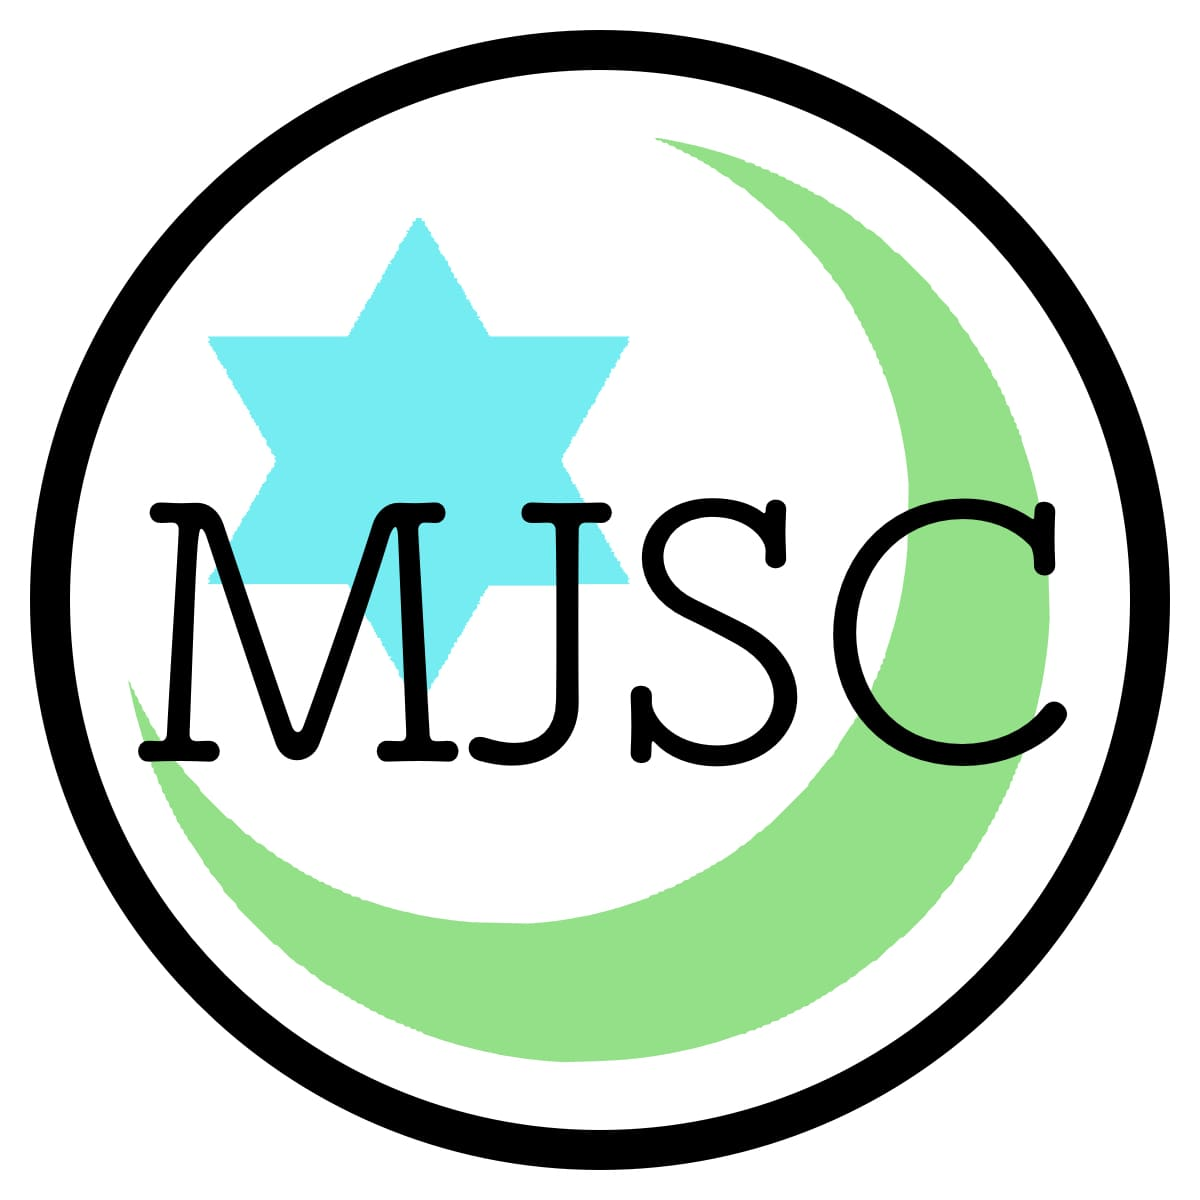 New Partnership - We are very excited to announce a new partnership with the Muslim-Jewish Solidarity Committee, with whom we will be producing an expanding series of art, academic and exploration events around the similarities between Muslims and Jews in history, culture and spirituality! To see how we work together, please visit this page. If you are interested in discussing a collaboration with our team, please contact us at humanrightsartfestival@gmail.com.